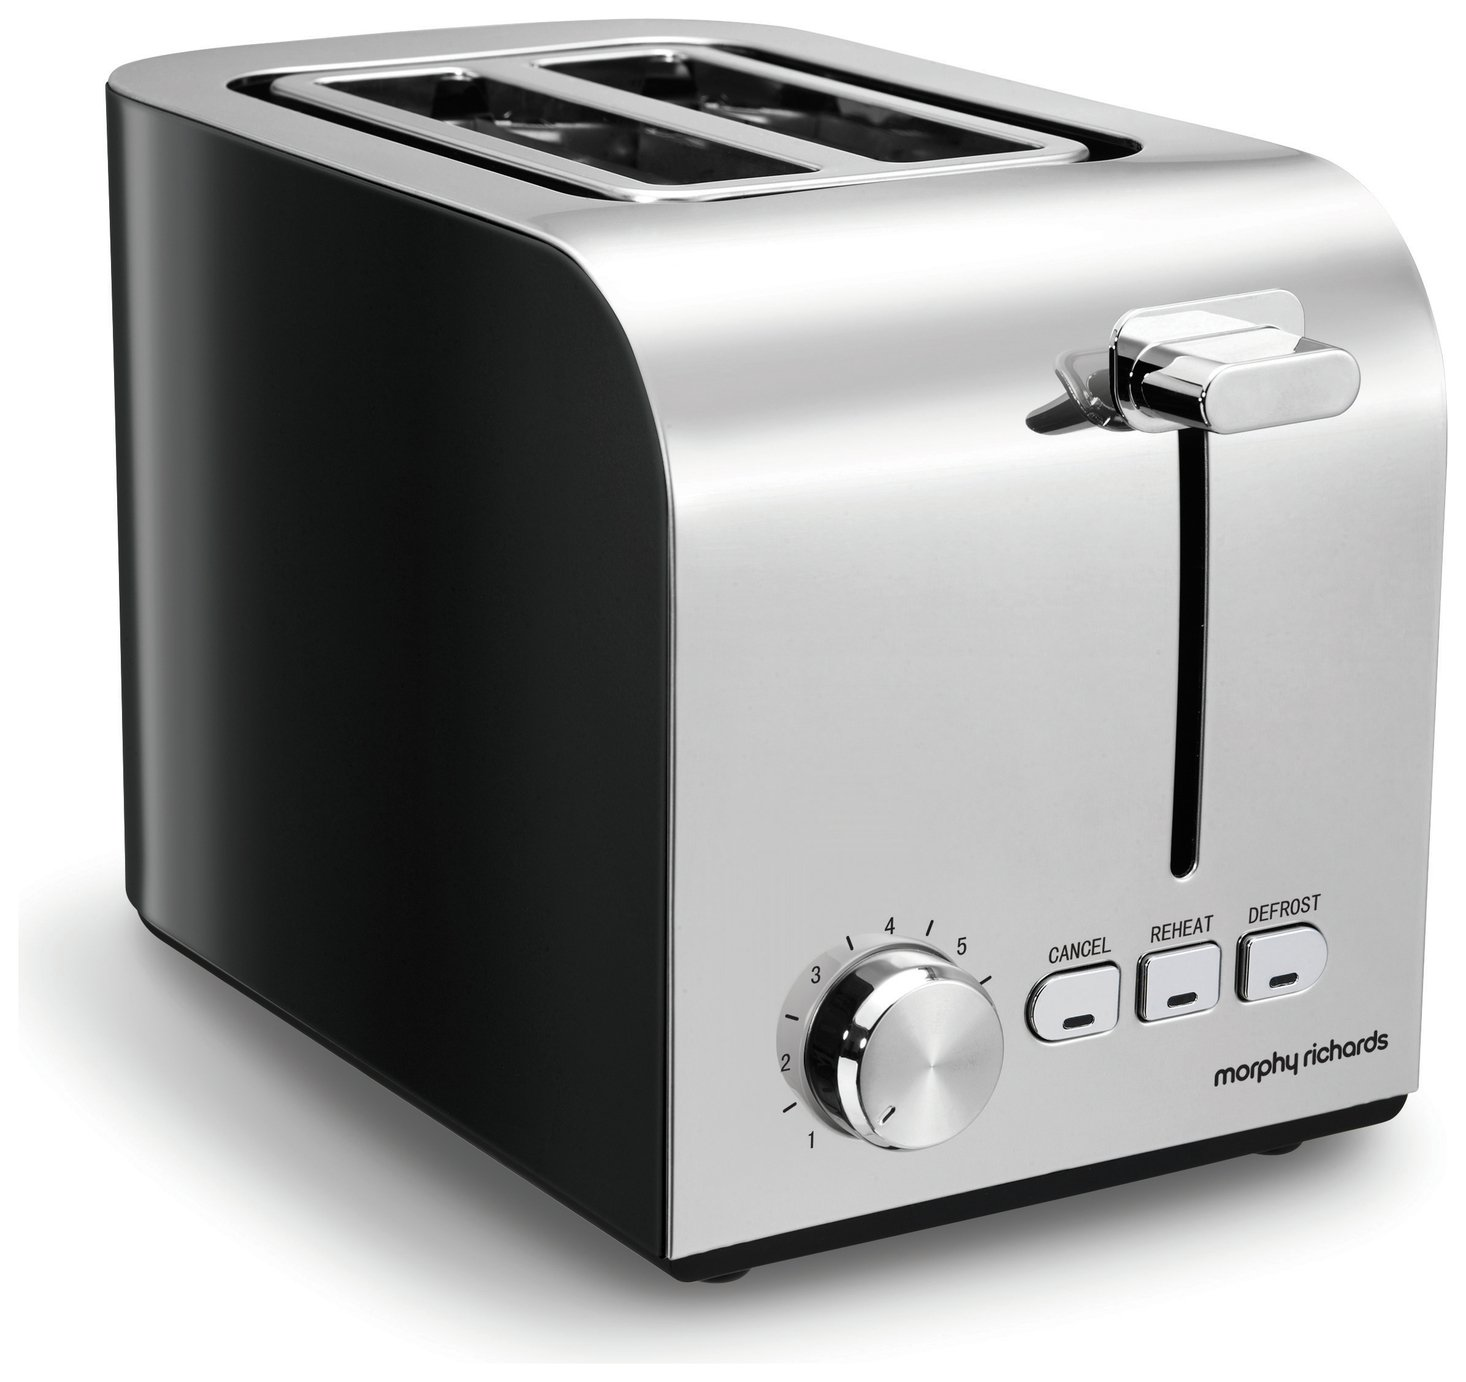 Morphy Richards 222054 Equip 2 Slice Toaster - Black